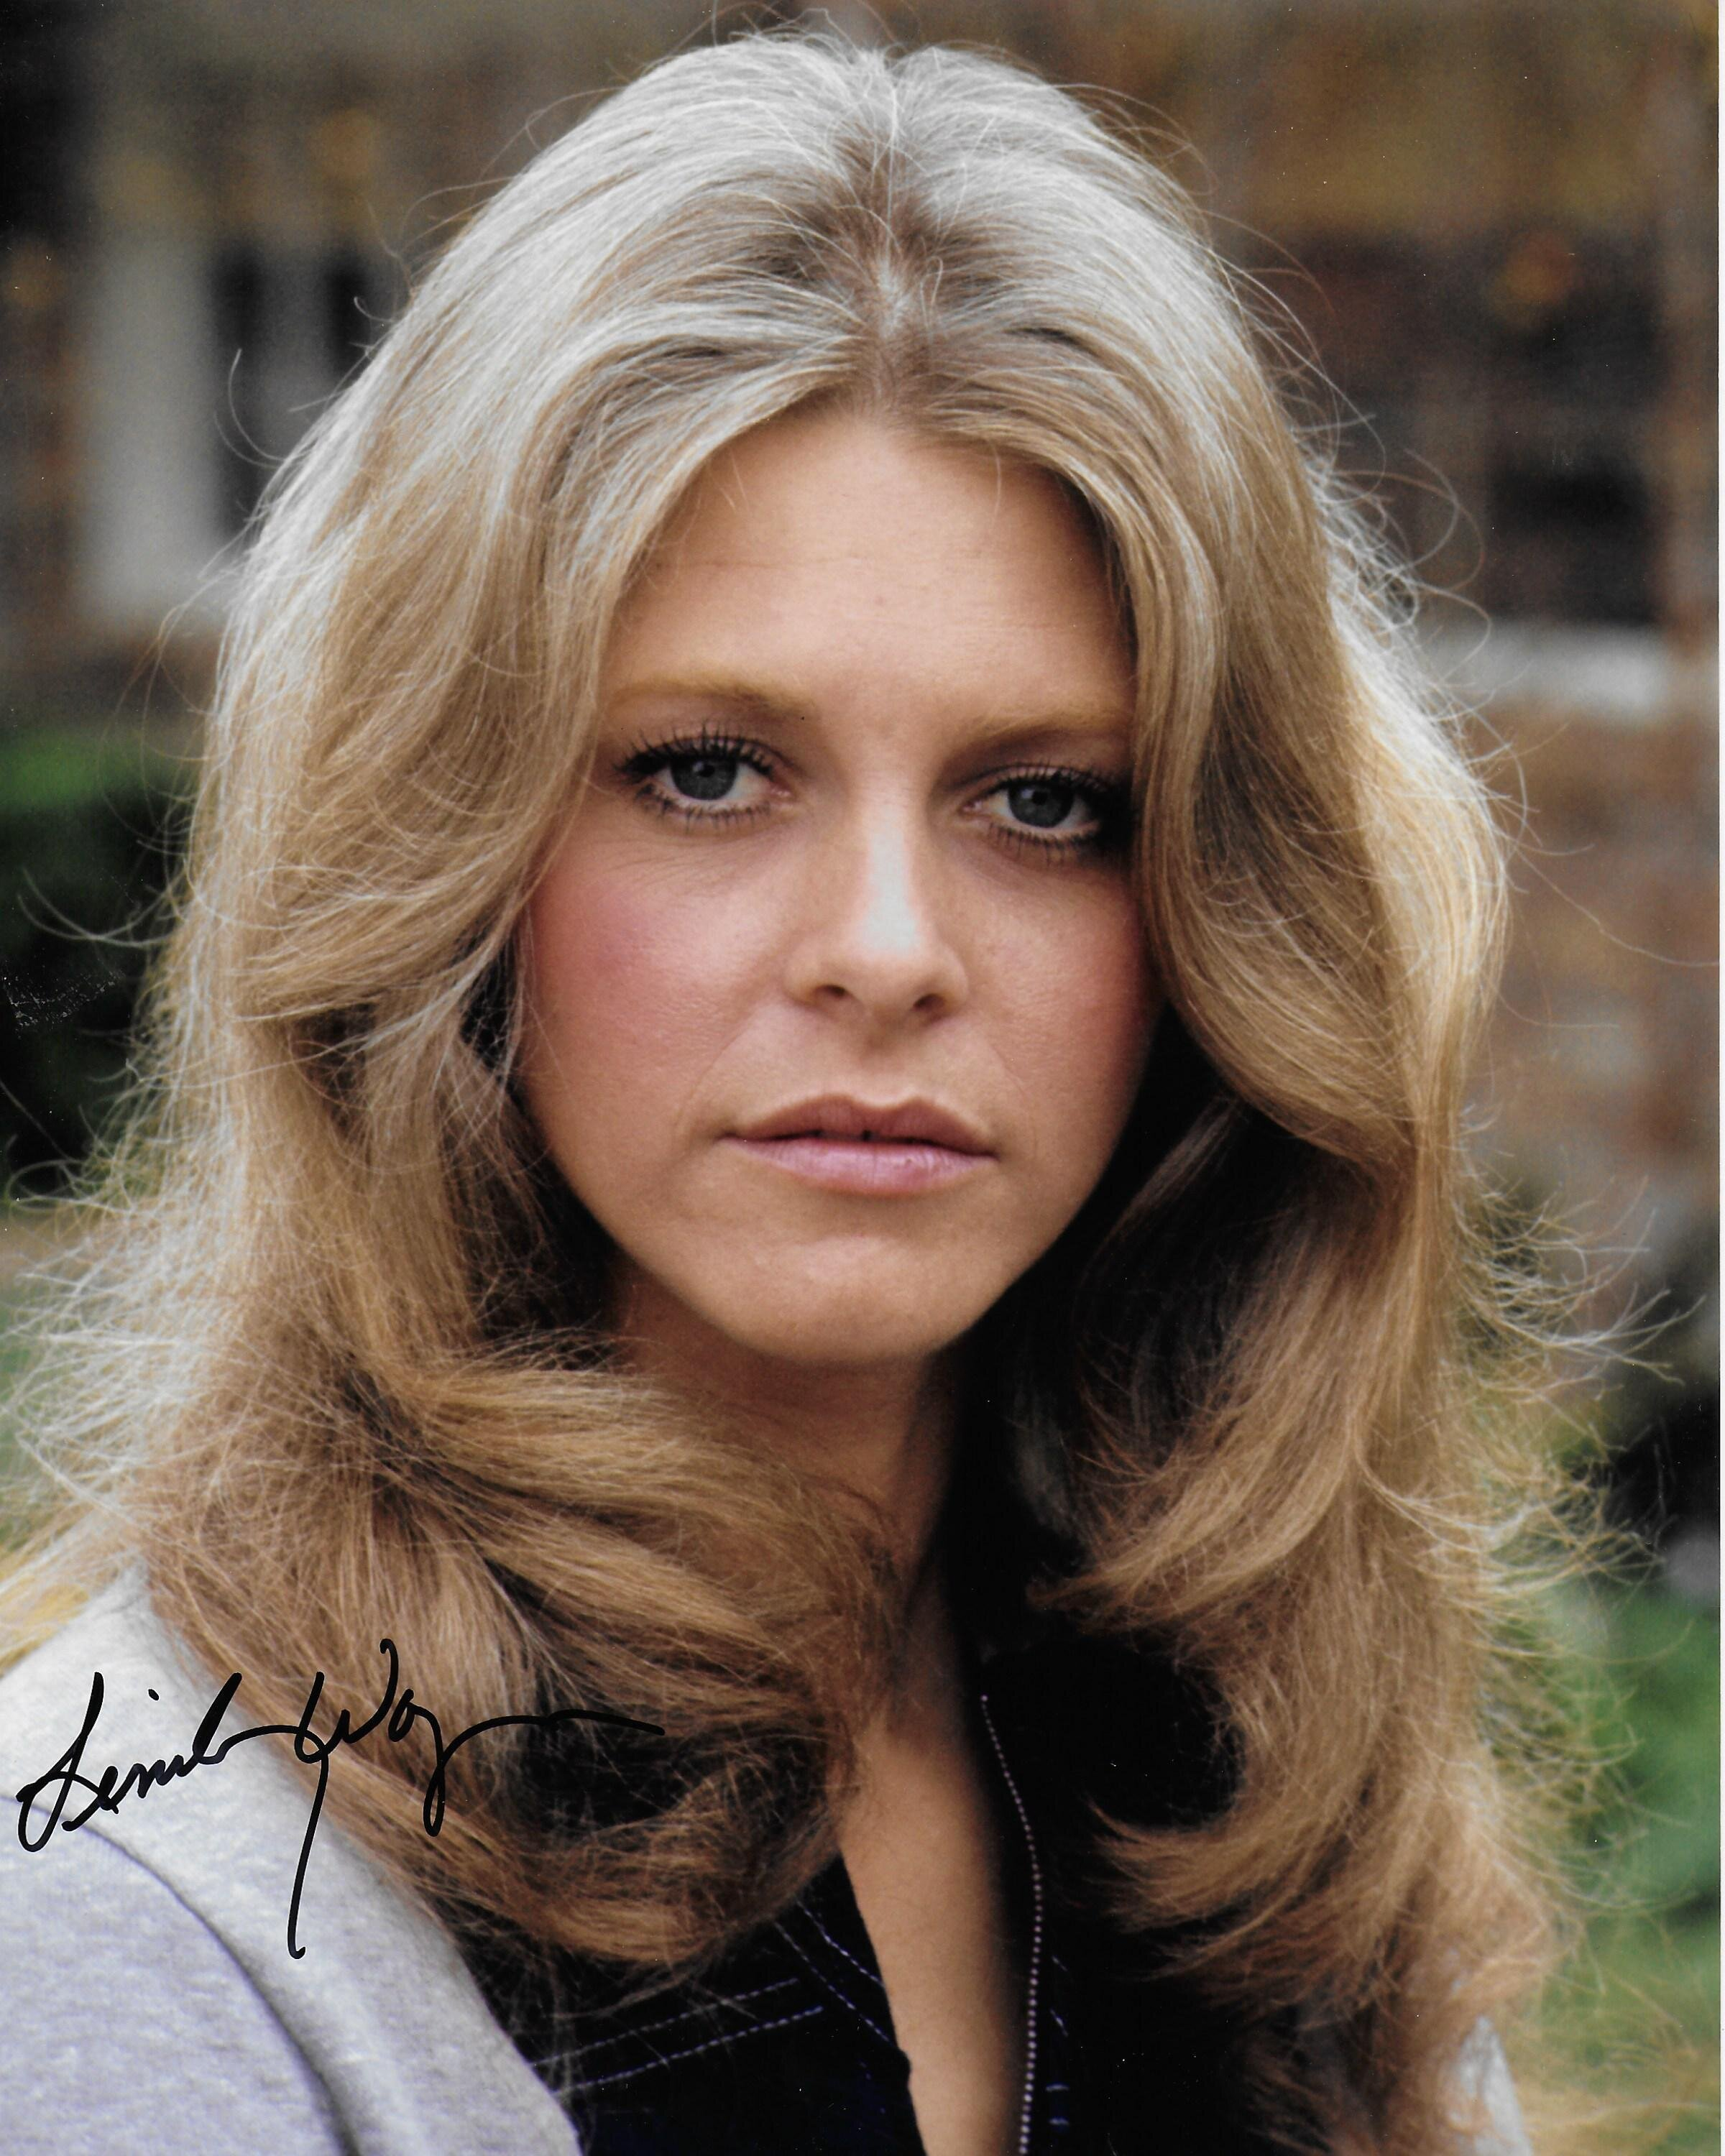 Lindsay Wagner Nude Photos 21